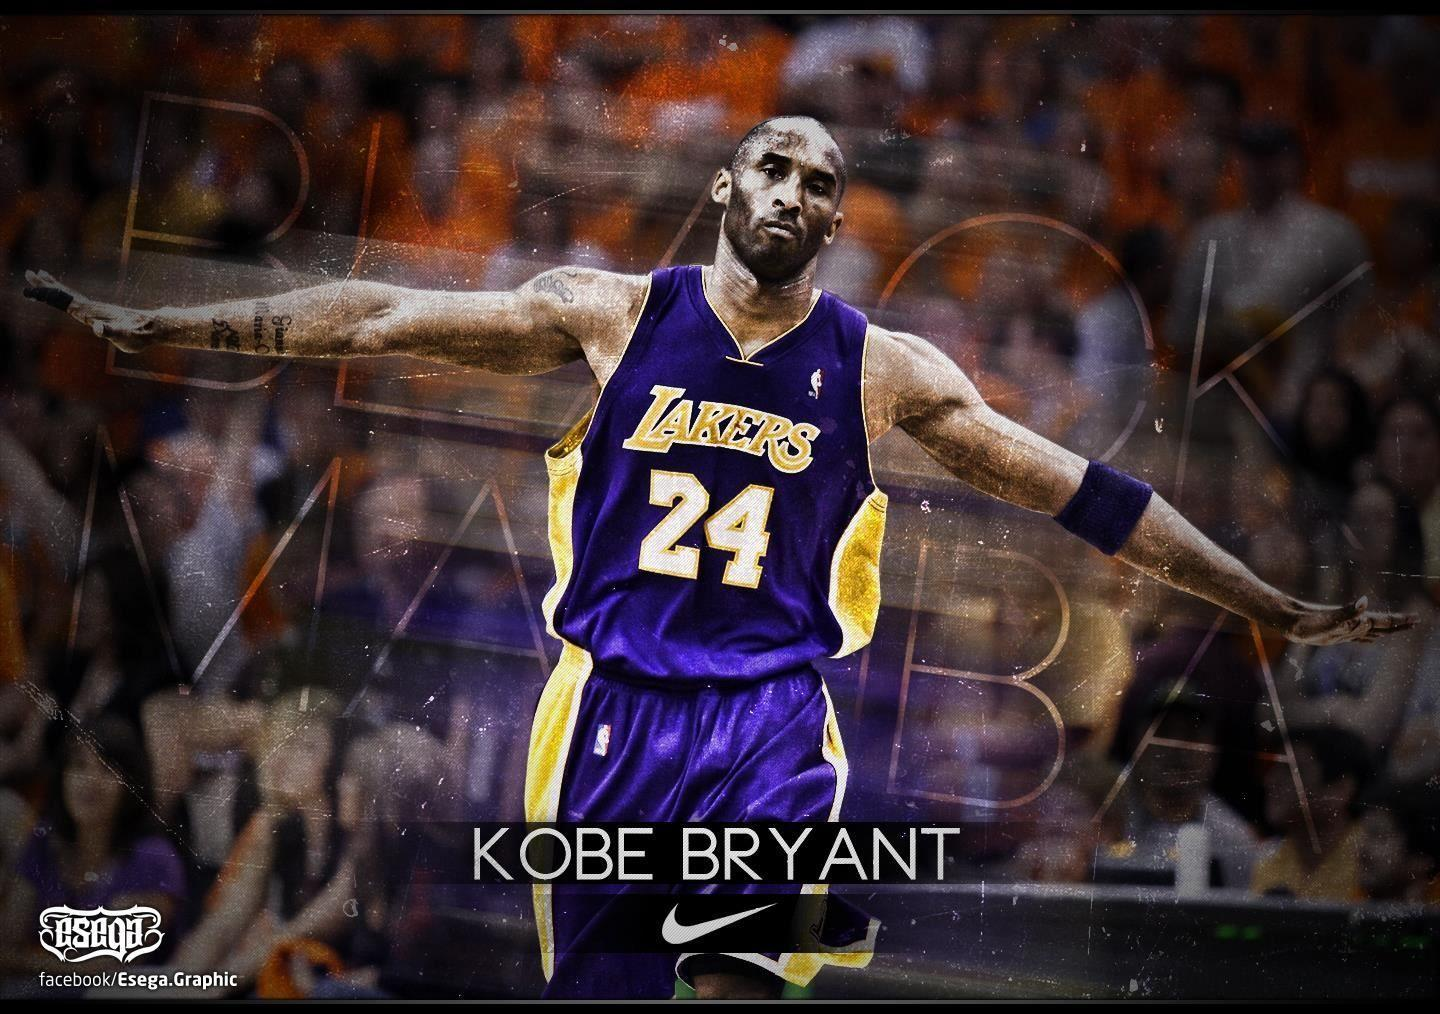 kobe bryant wallpaper 2016 - photo #39